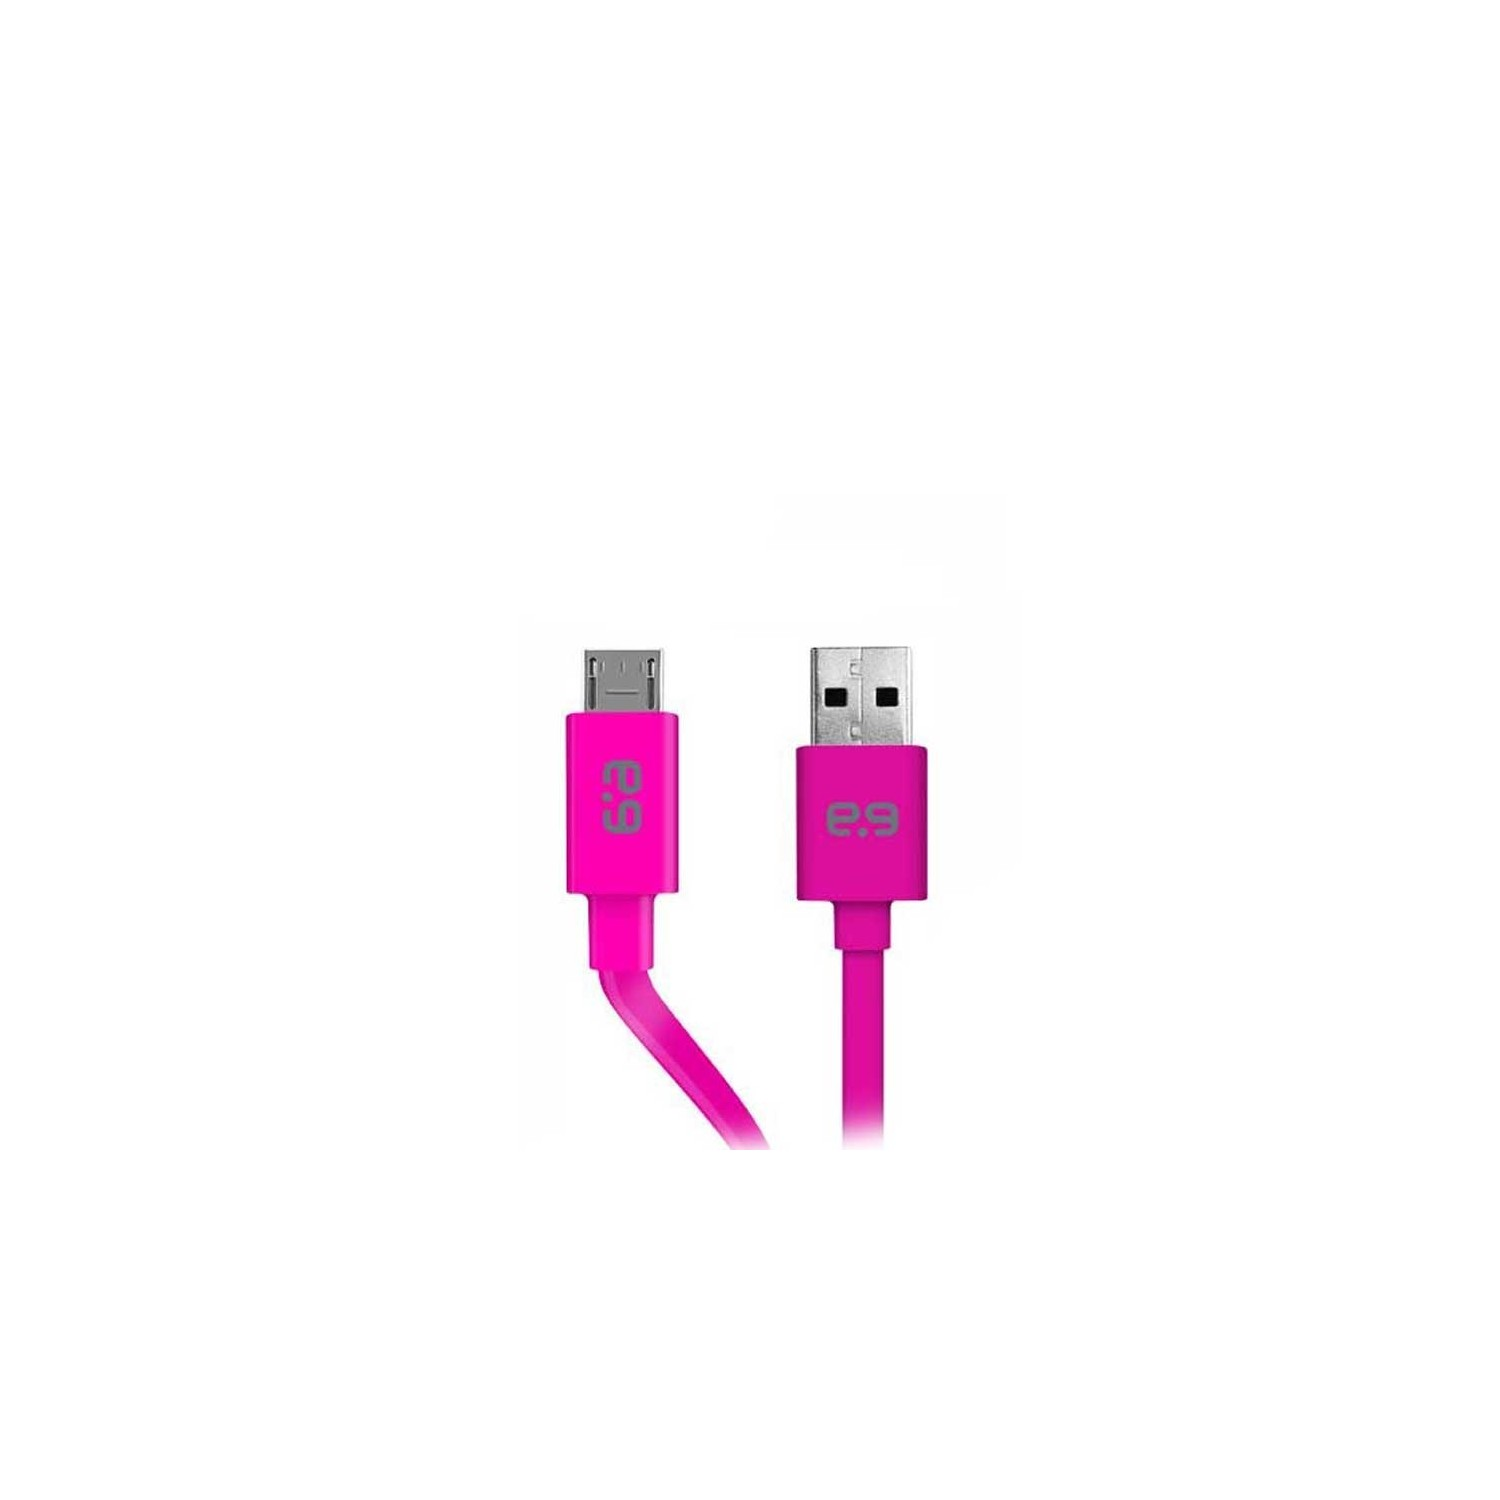 SYNC CABLE - Puregear Micro USB Flat Universal Cable PINK